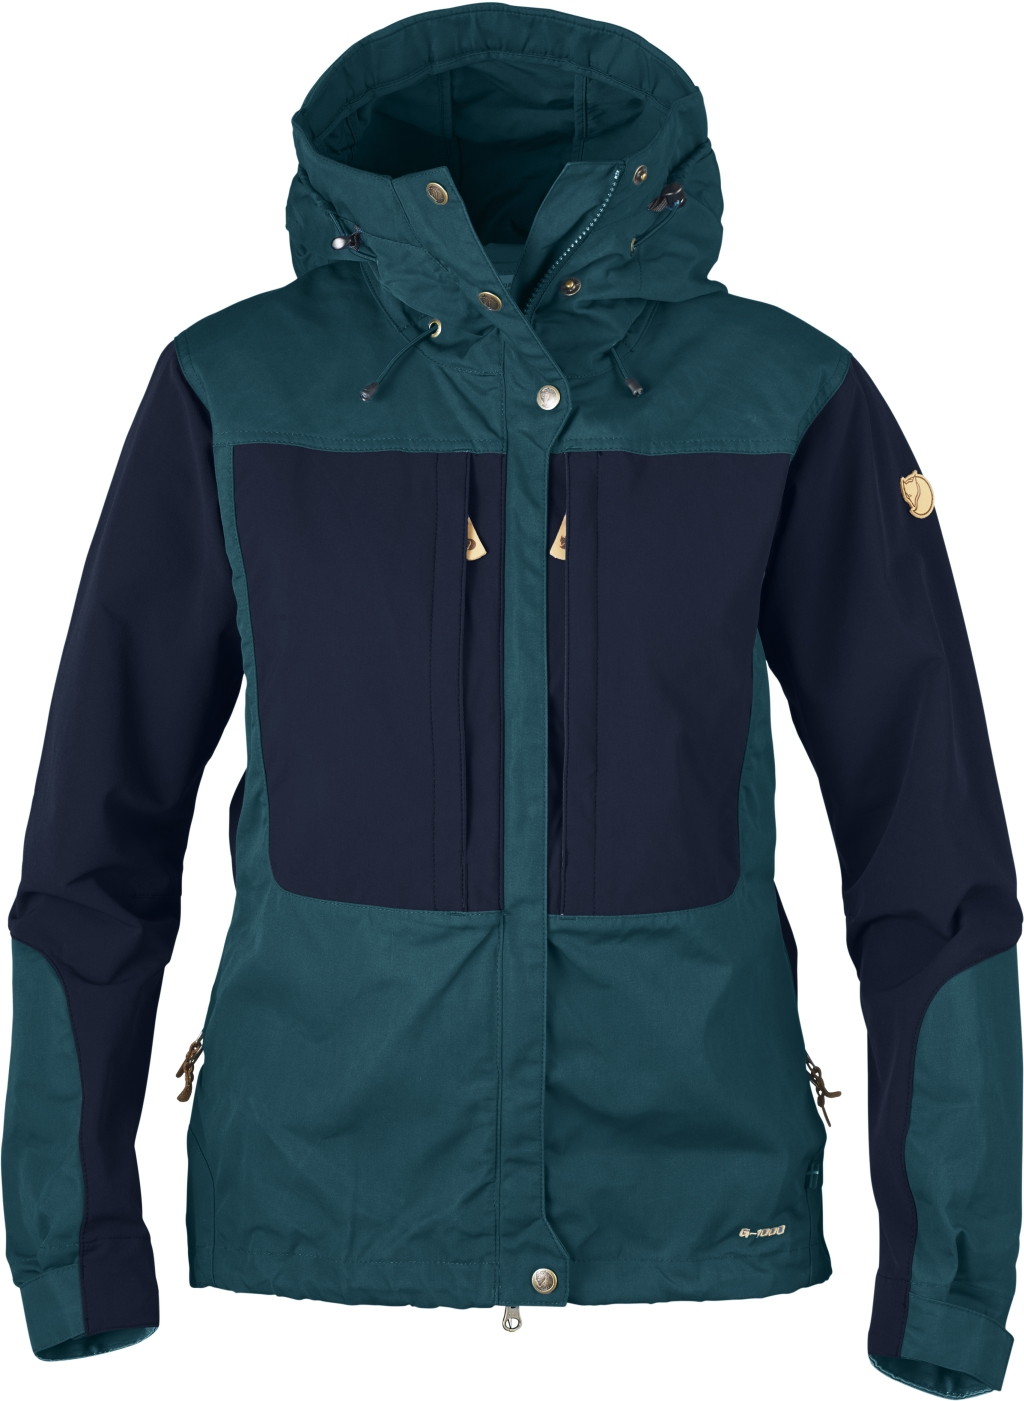 FjallRaven Keb Jacket W. Glacier Green-Dark Navy-30